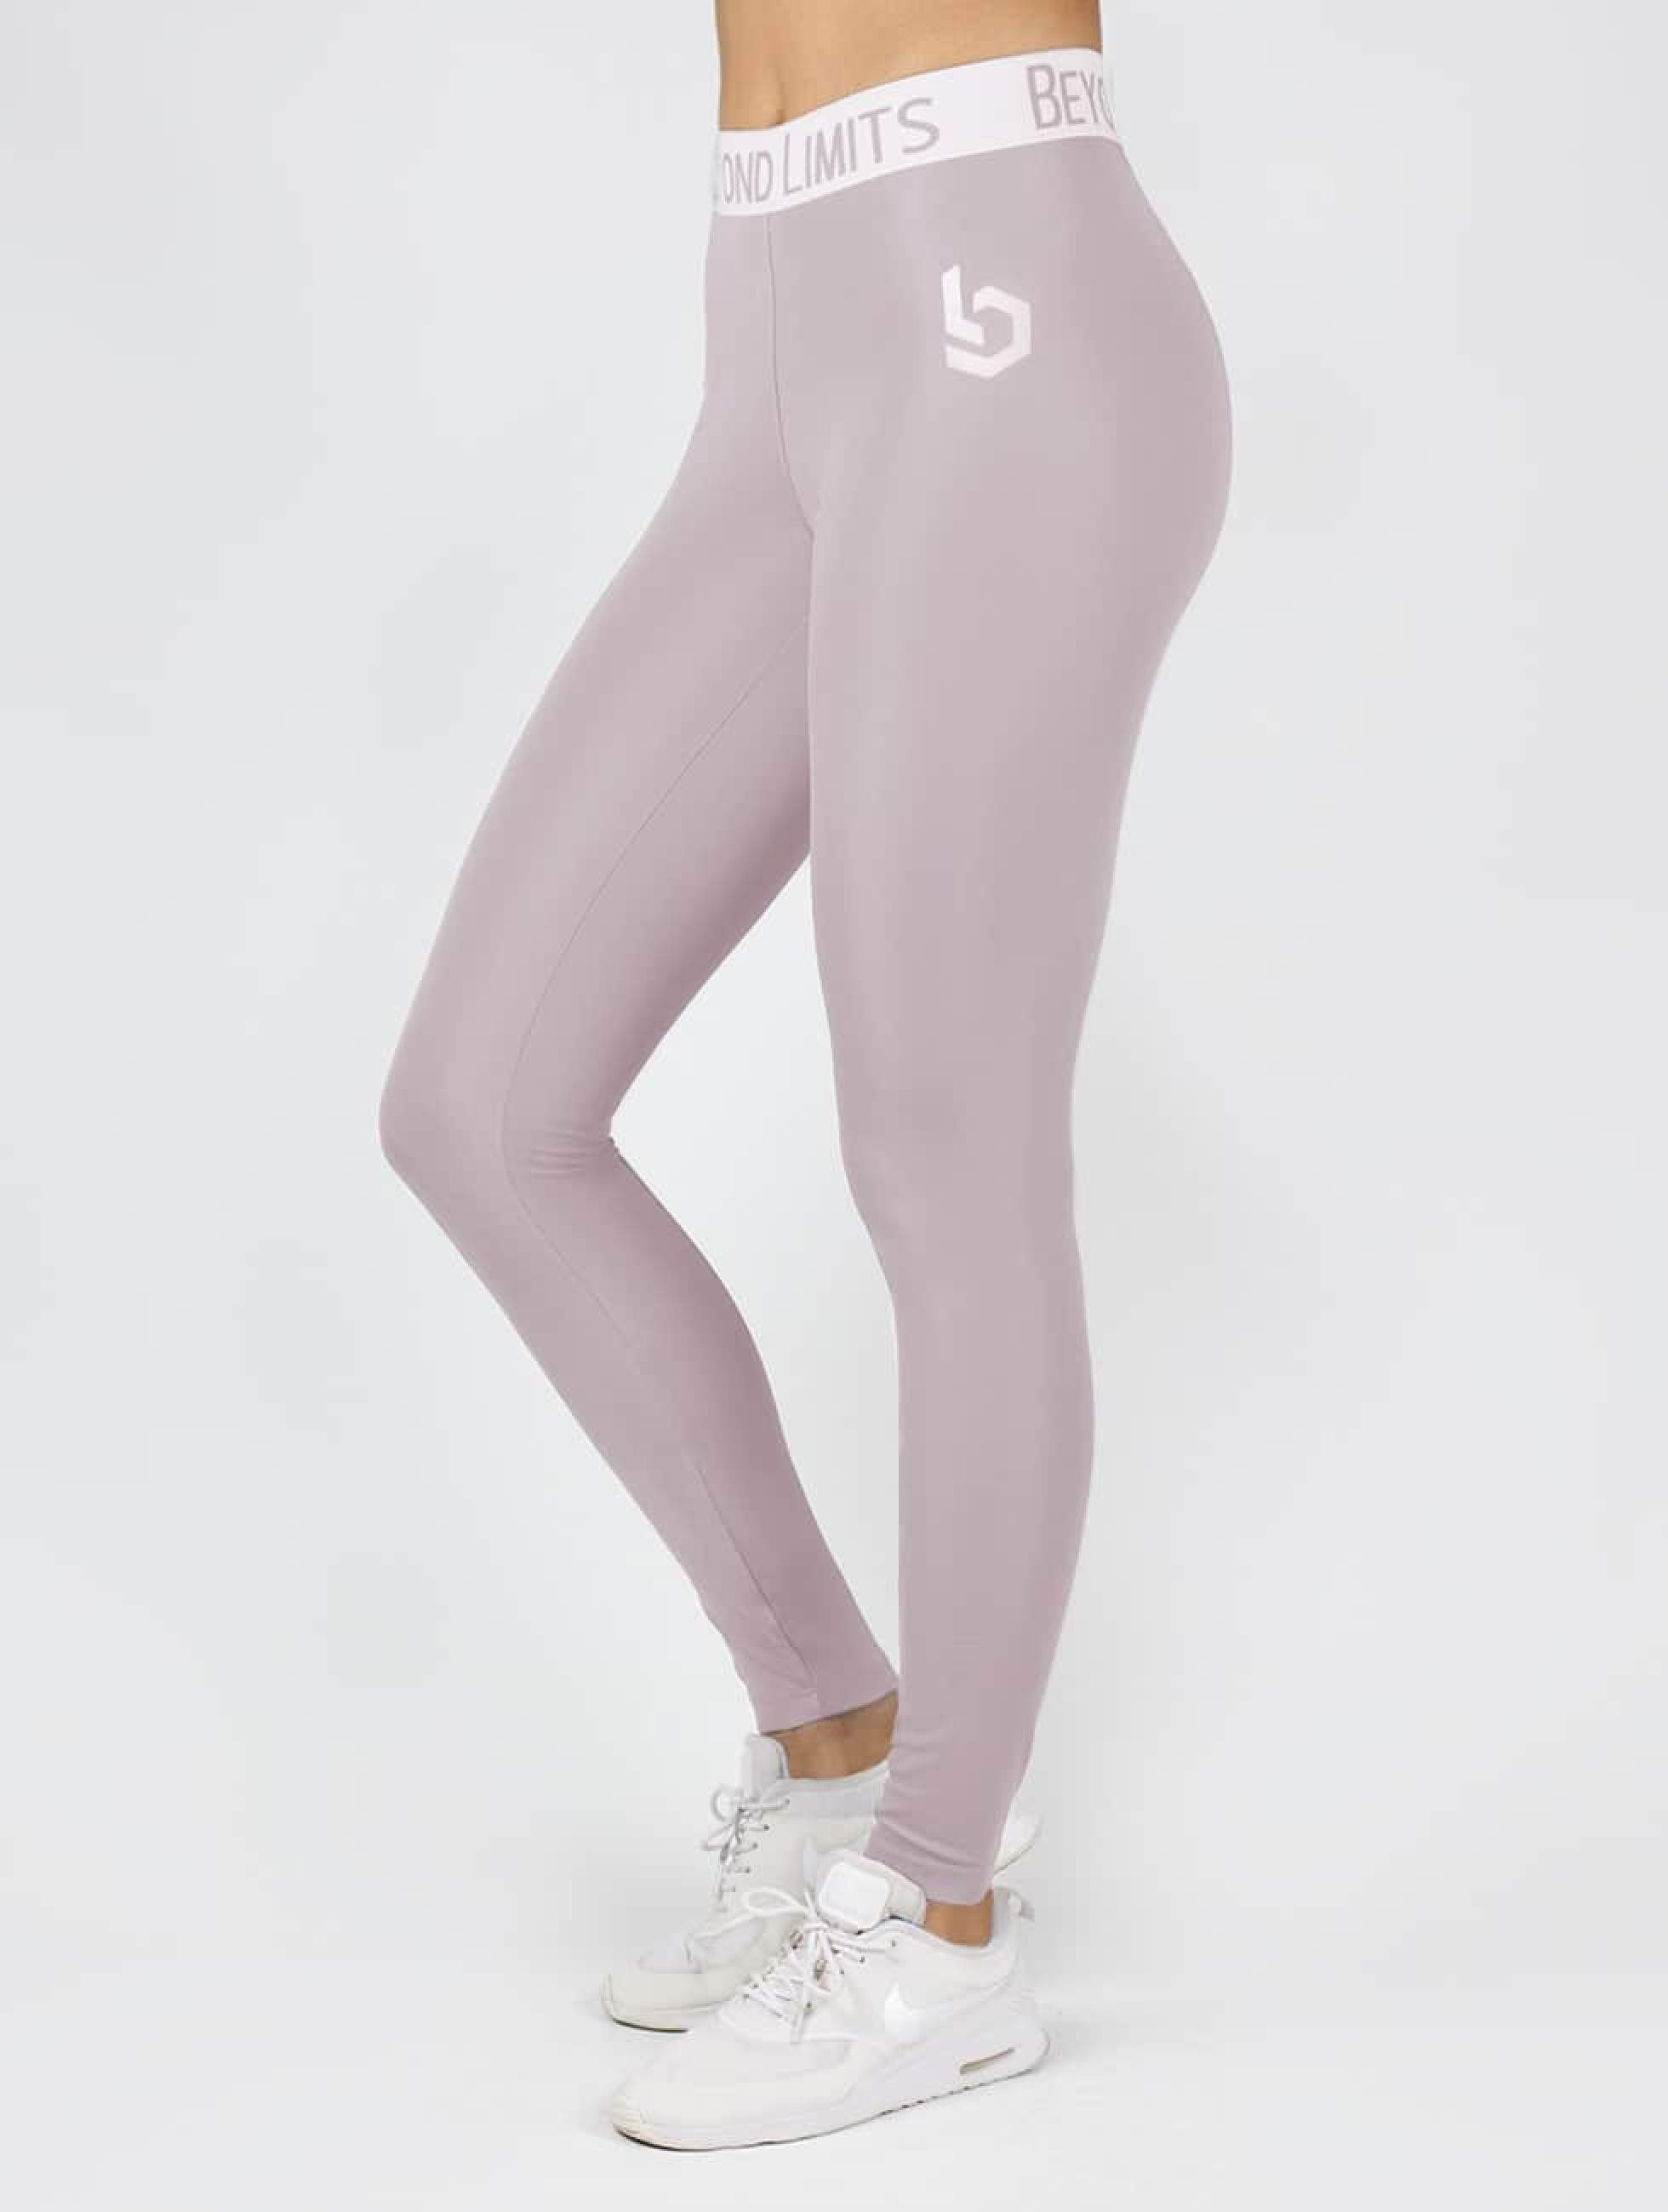 Beyond Limits | Flex rose Femme Legging